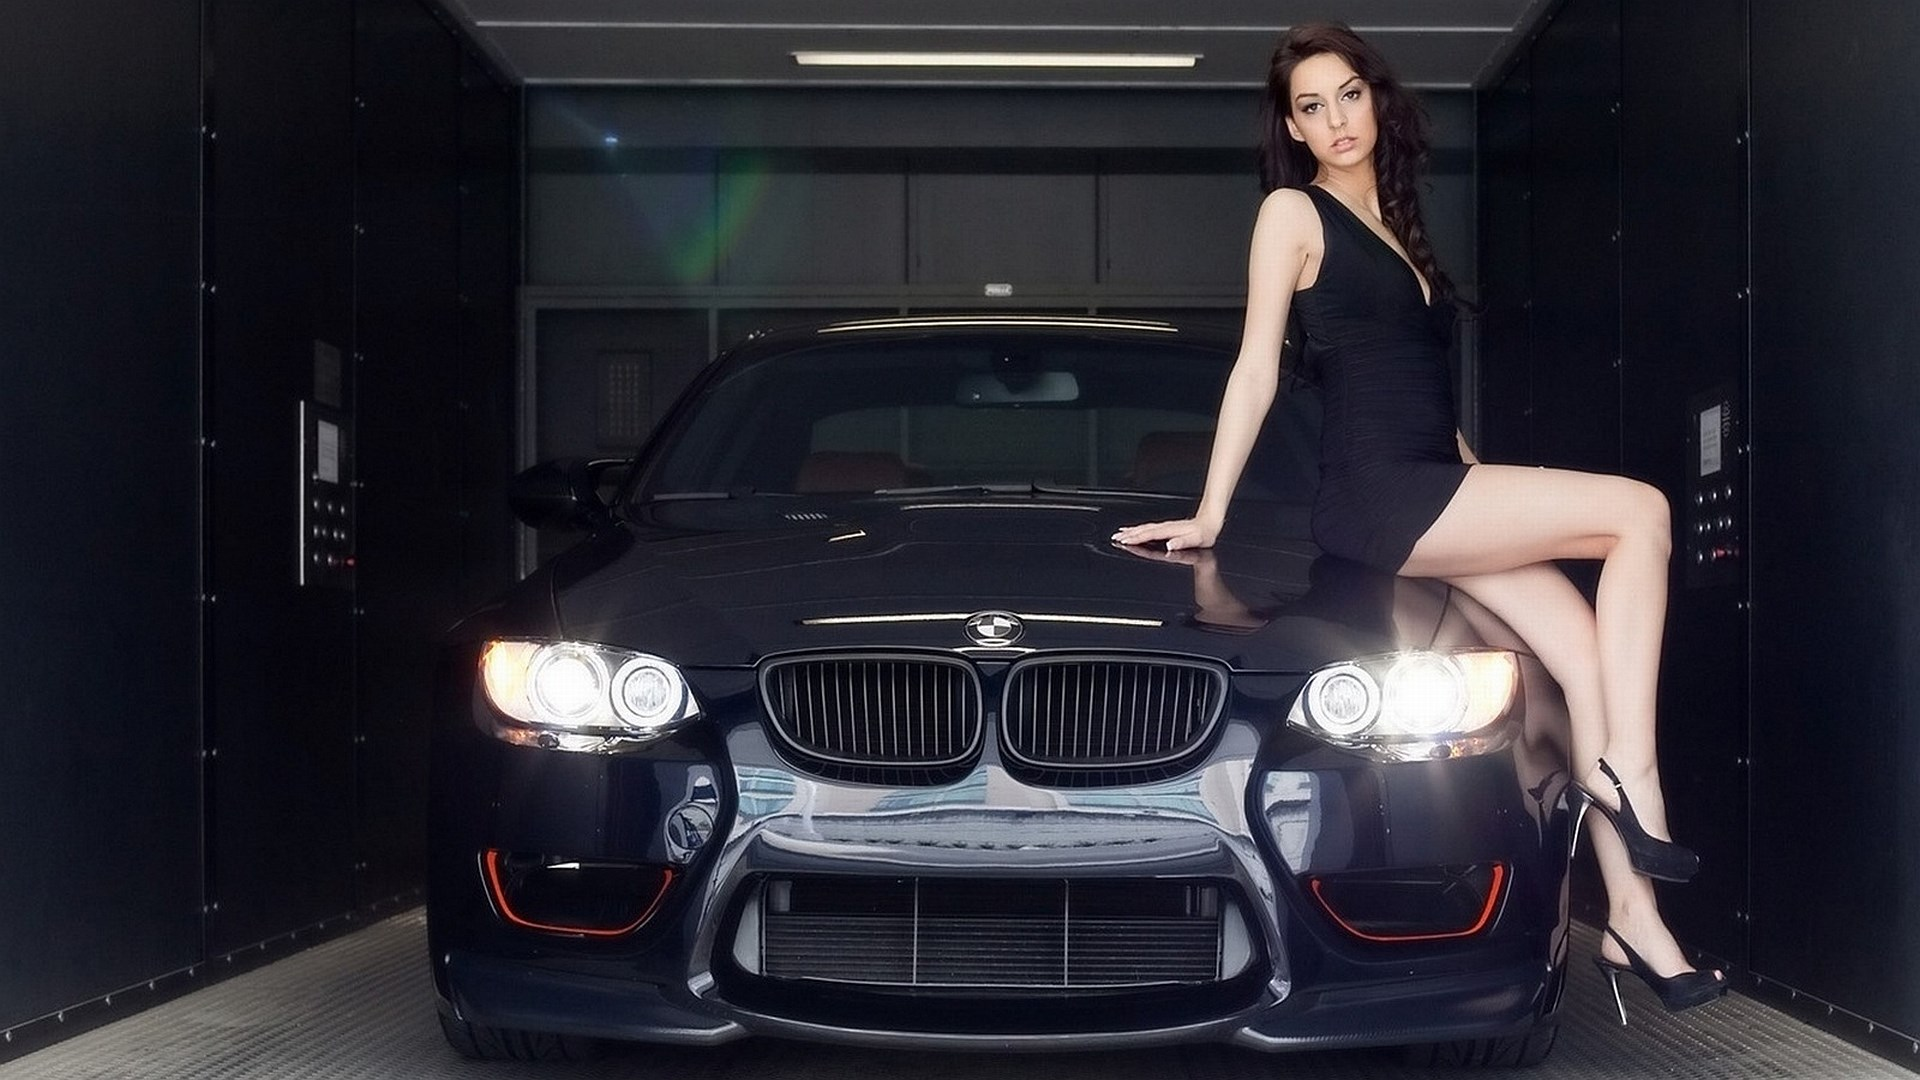 1920x1080-High-Resolution-girls-and-cars-wallpaper-wpc580133